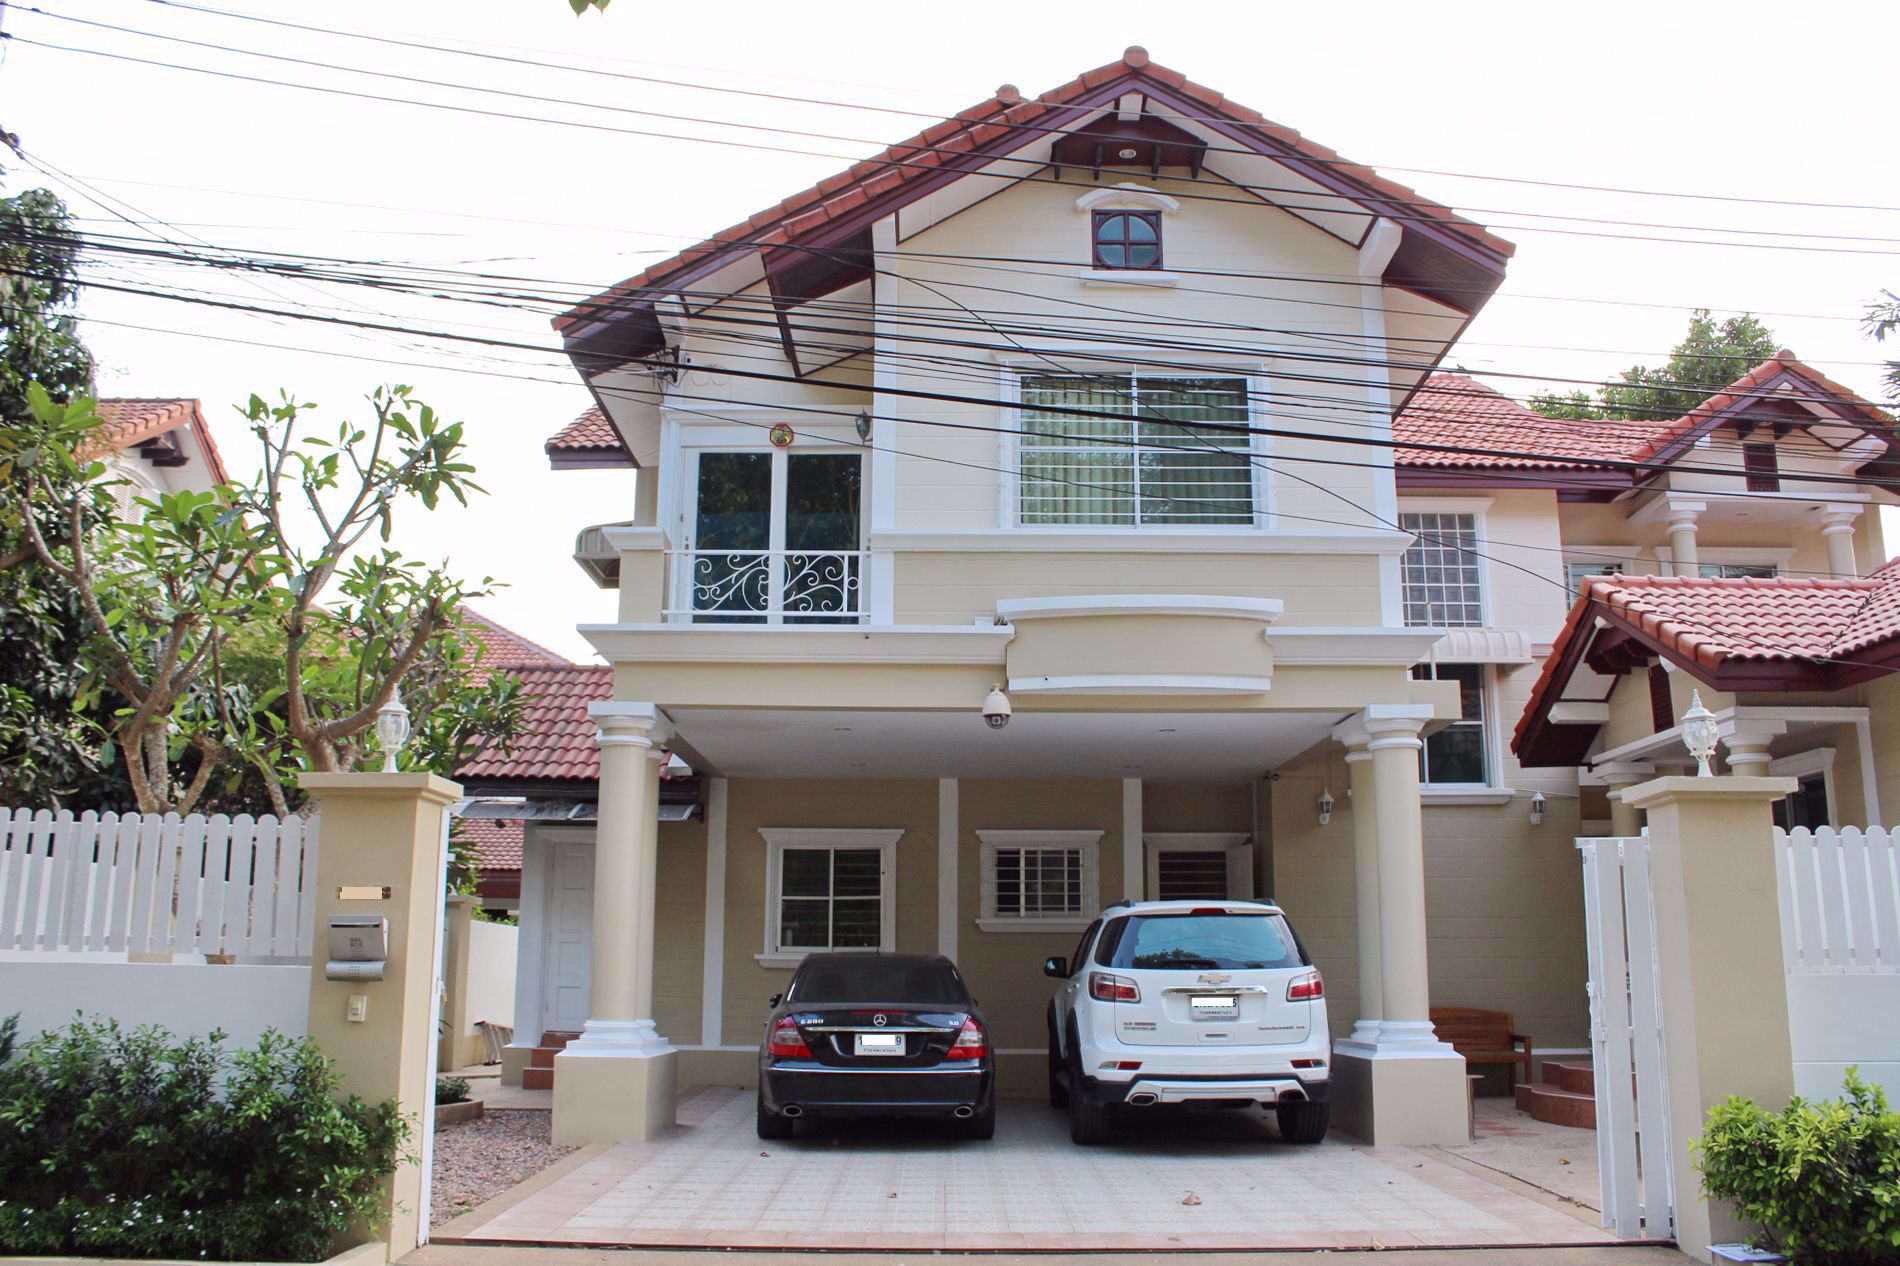 Picture of 3 Bedrooms bed in House in East Pattaya H009059